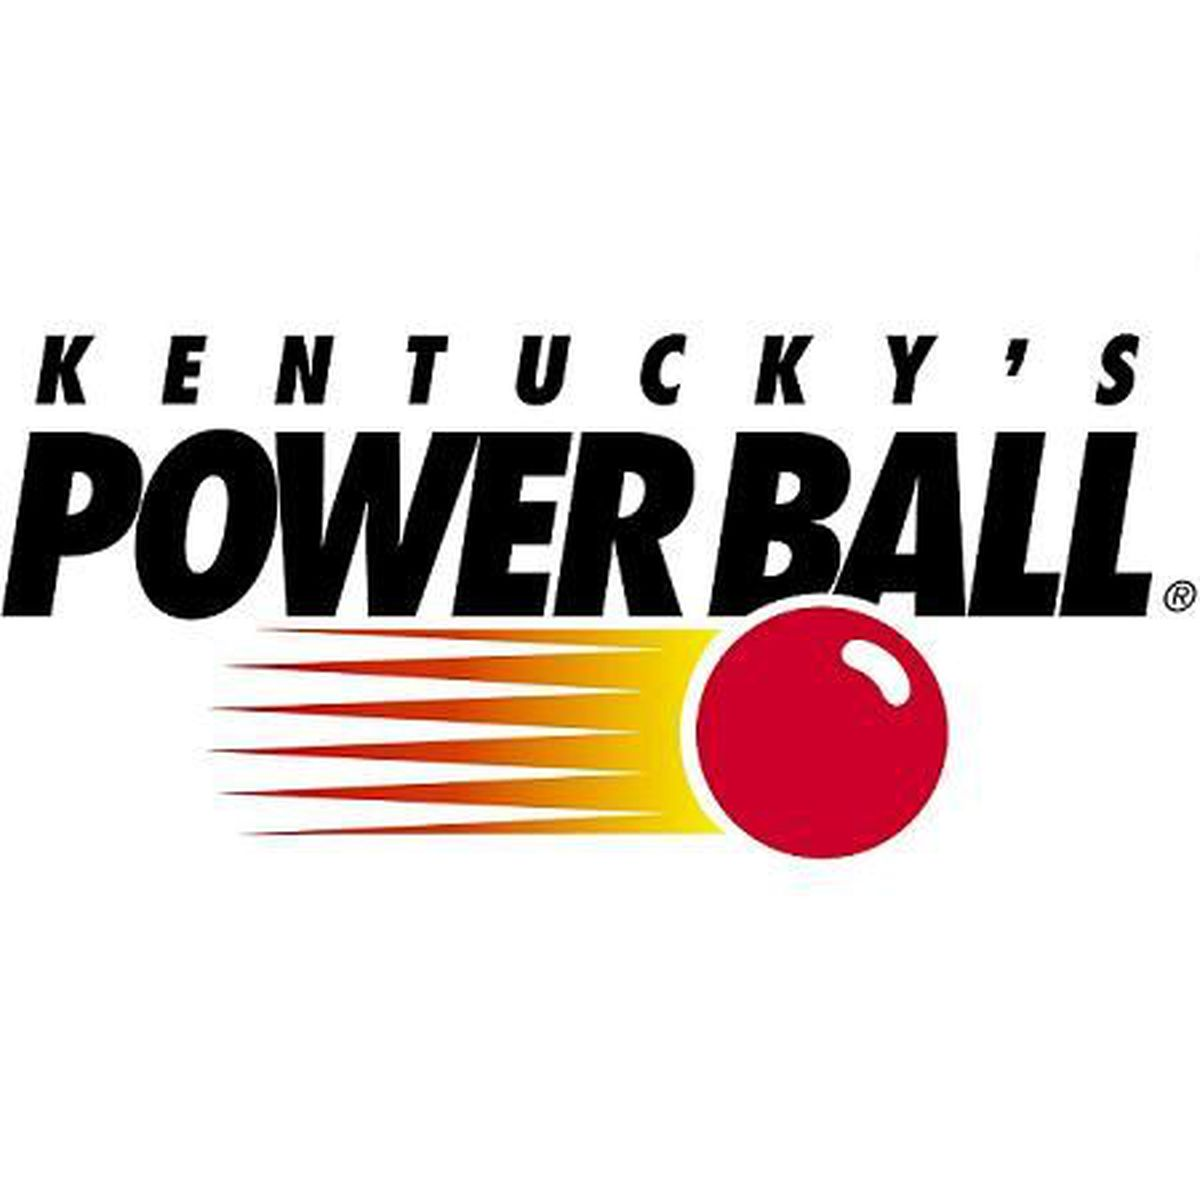 Winning $50,000 Powerball Ticket Sold In Owensboro